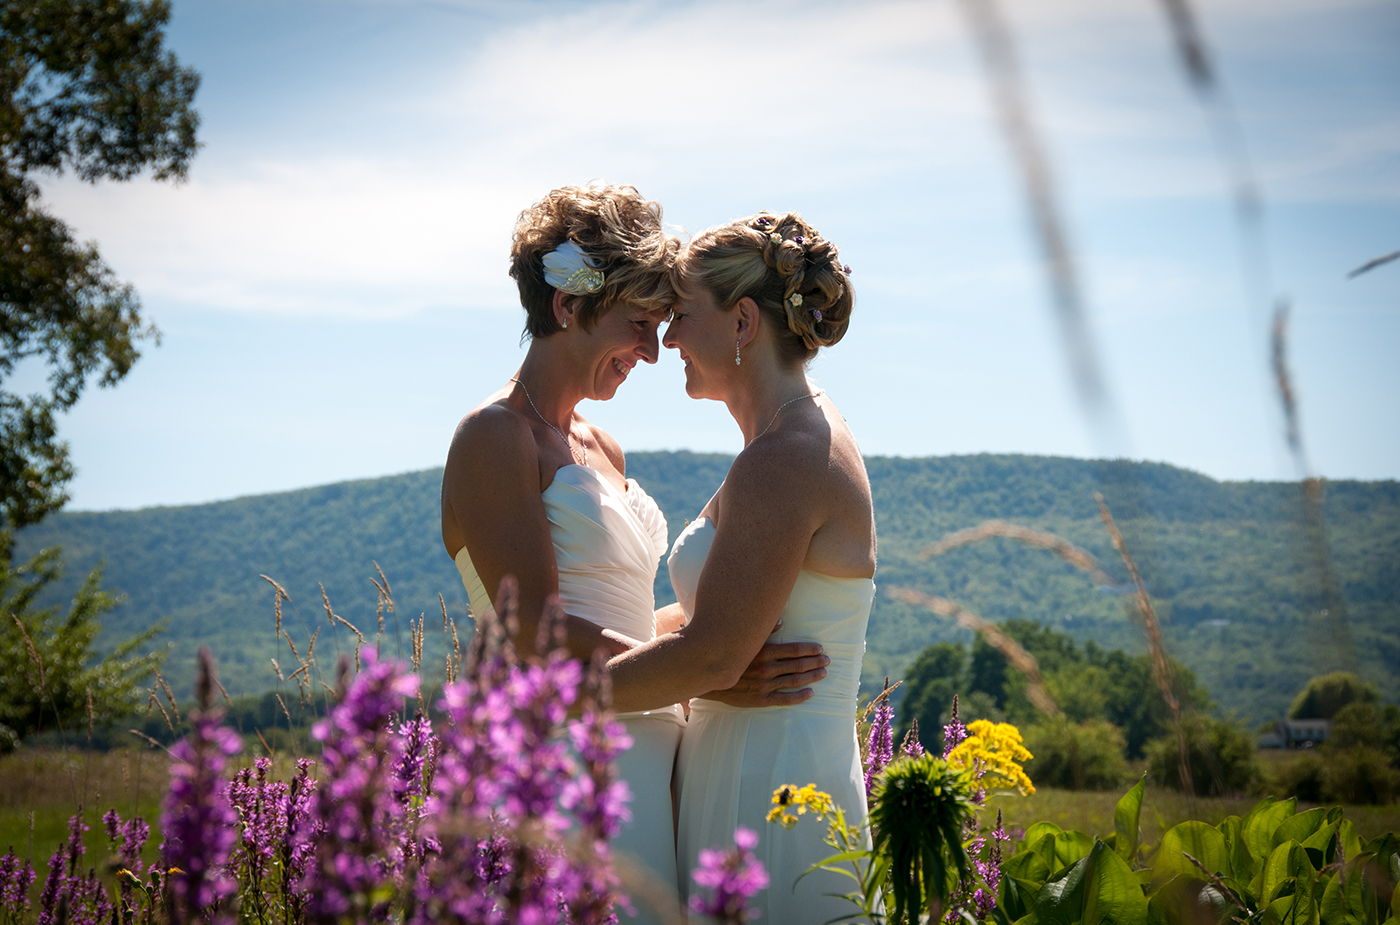 All Occasions Photography Albany NY - Wedding Photography Brides Pressing Foreheads Together with Mountains in Background